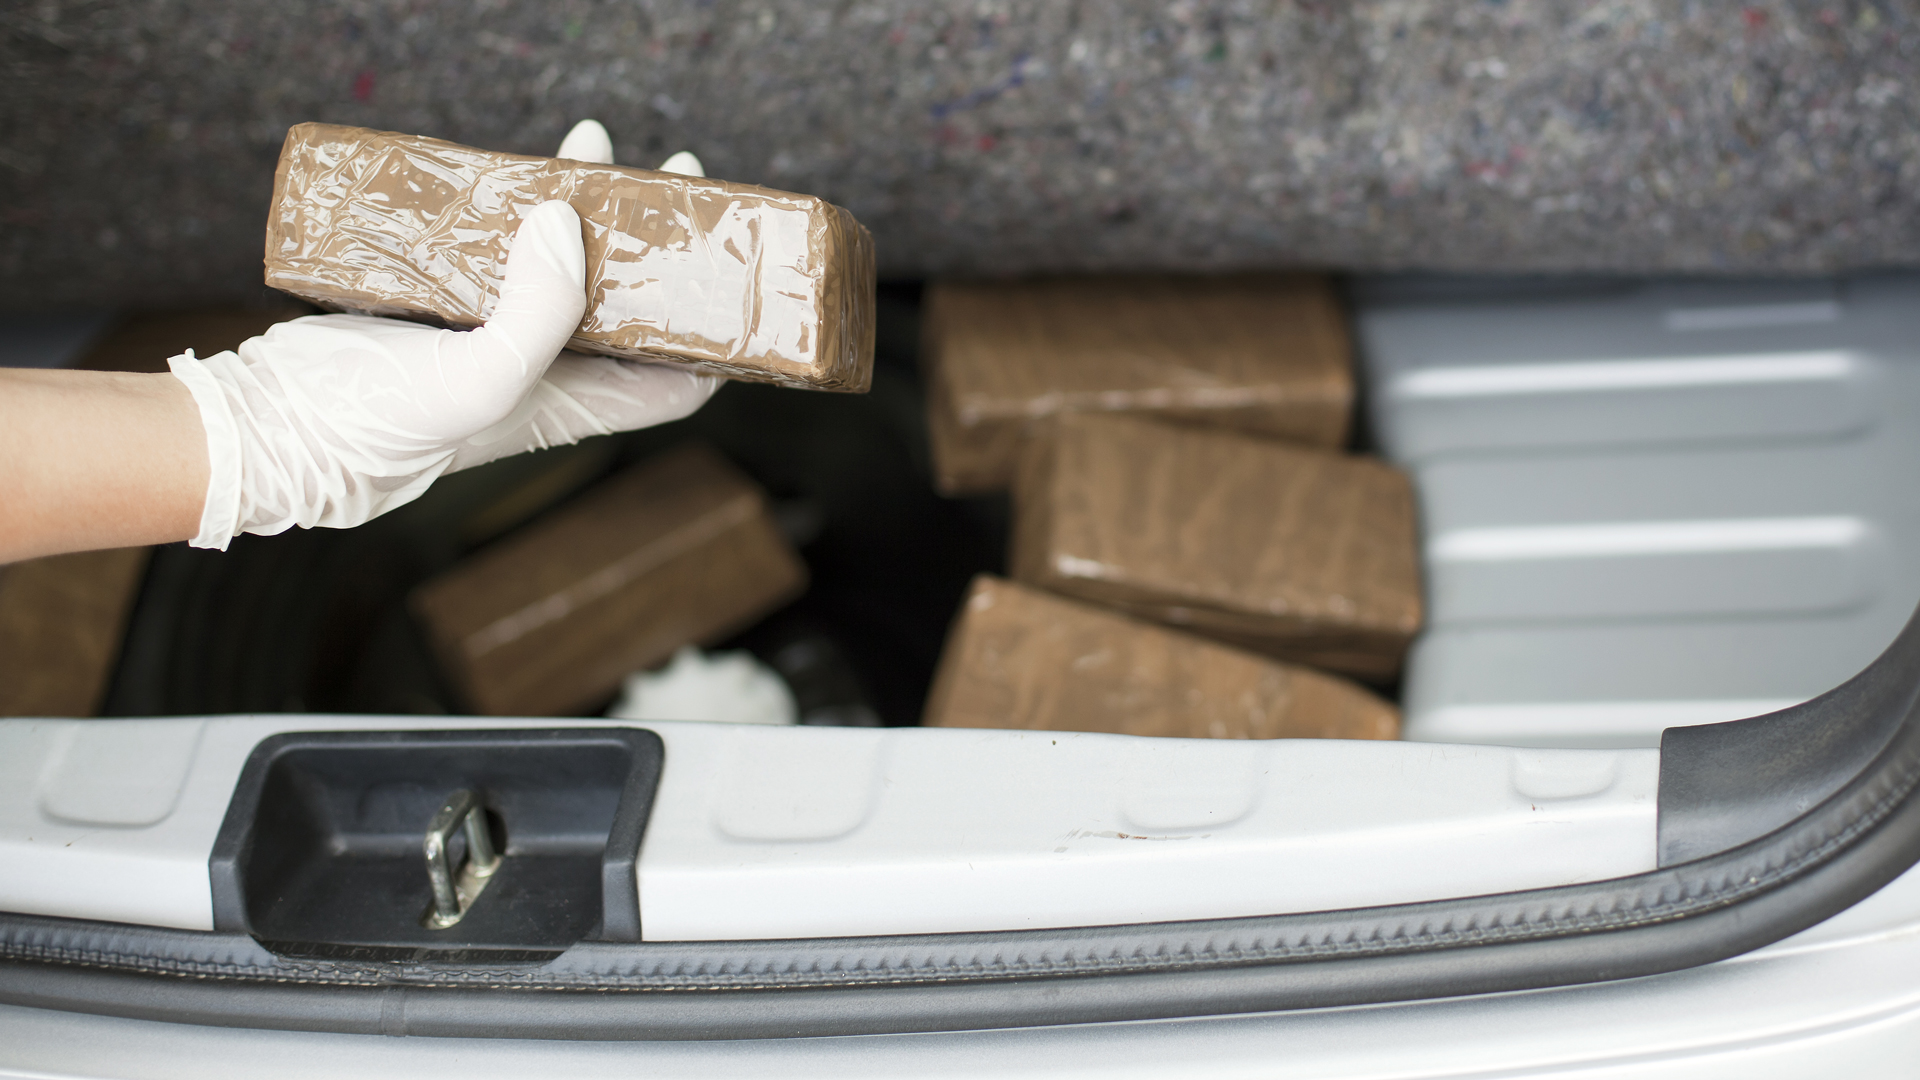 The Illegal Drug Highway Decimating the Midwest